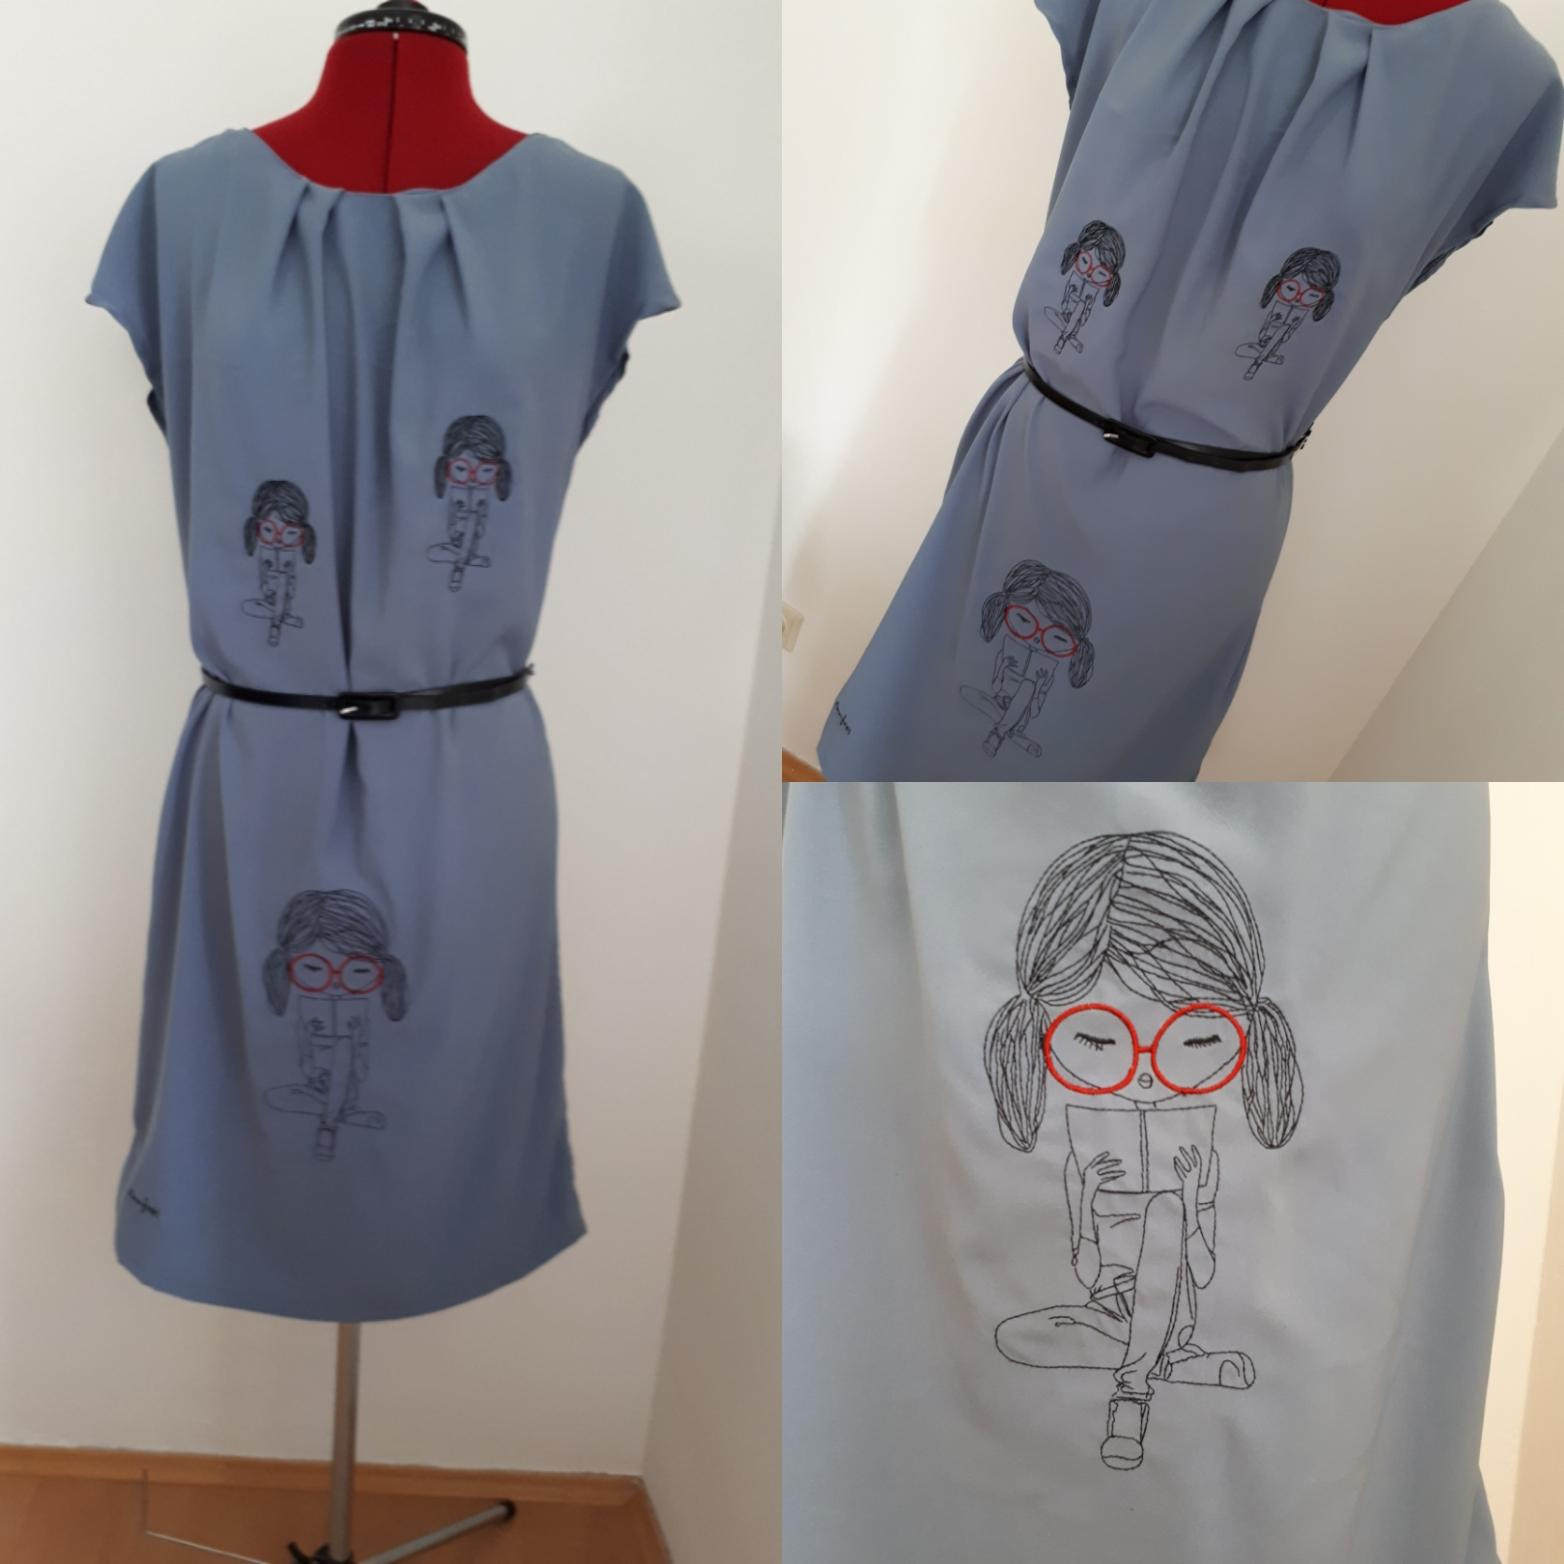 Embroidered dress with Reading girl design